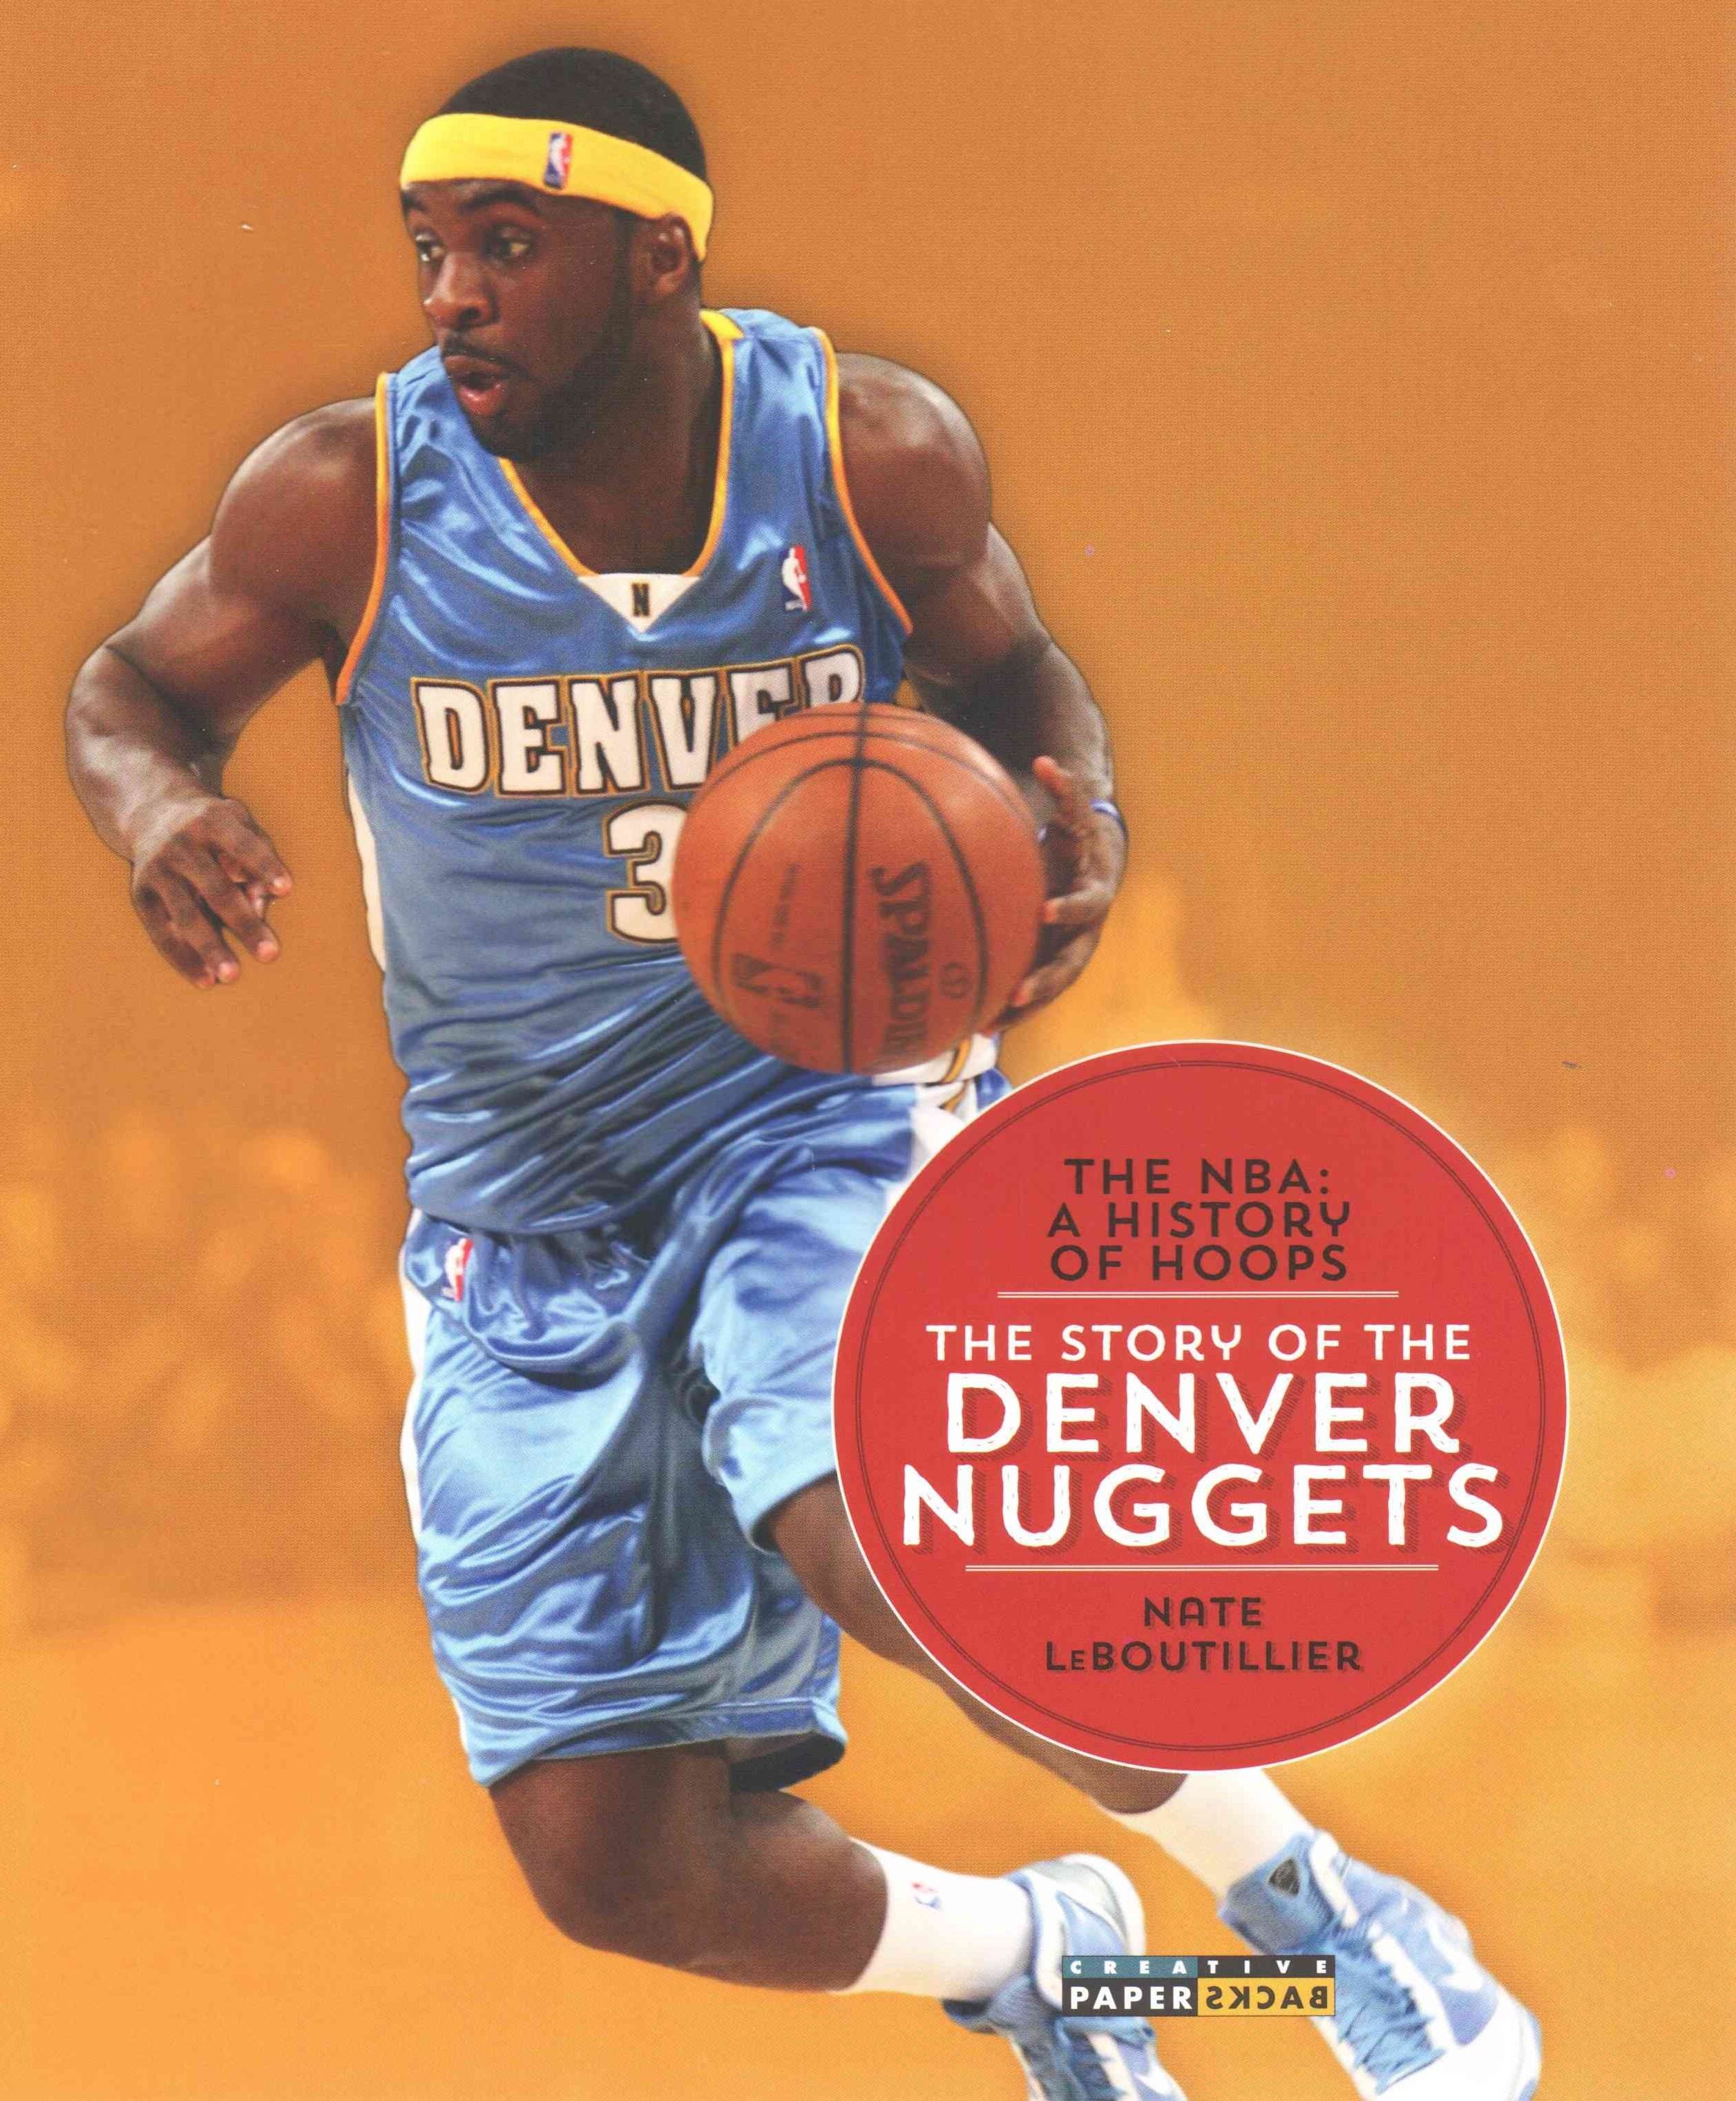 The NBA: a History of Hoops: the Story of the Denver Nuggets